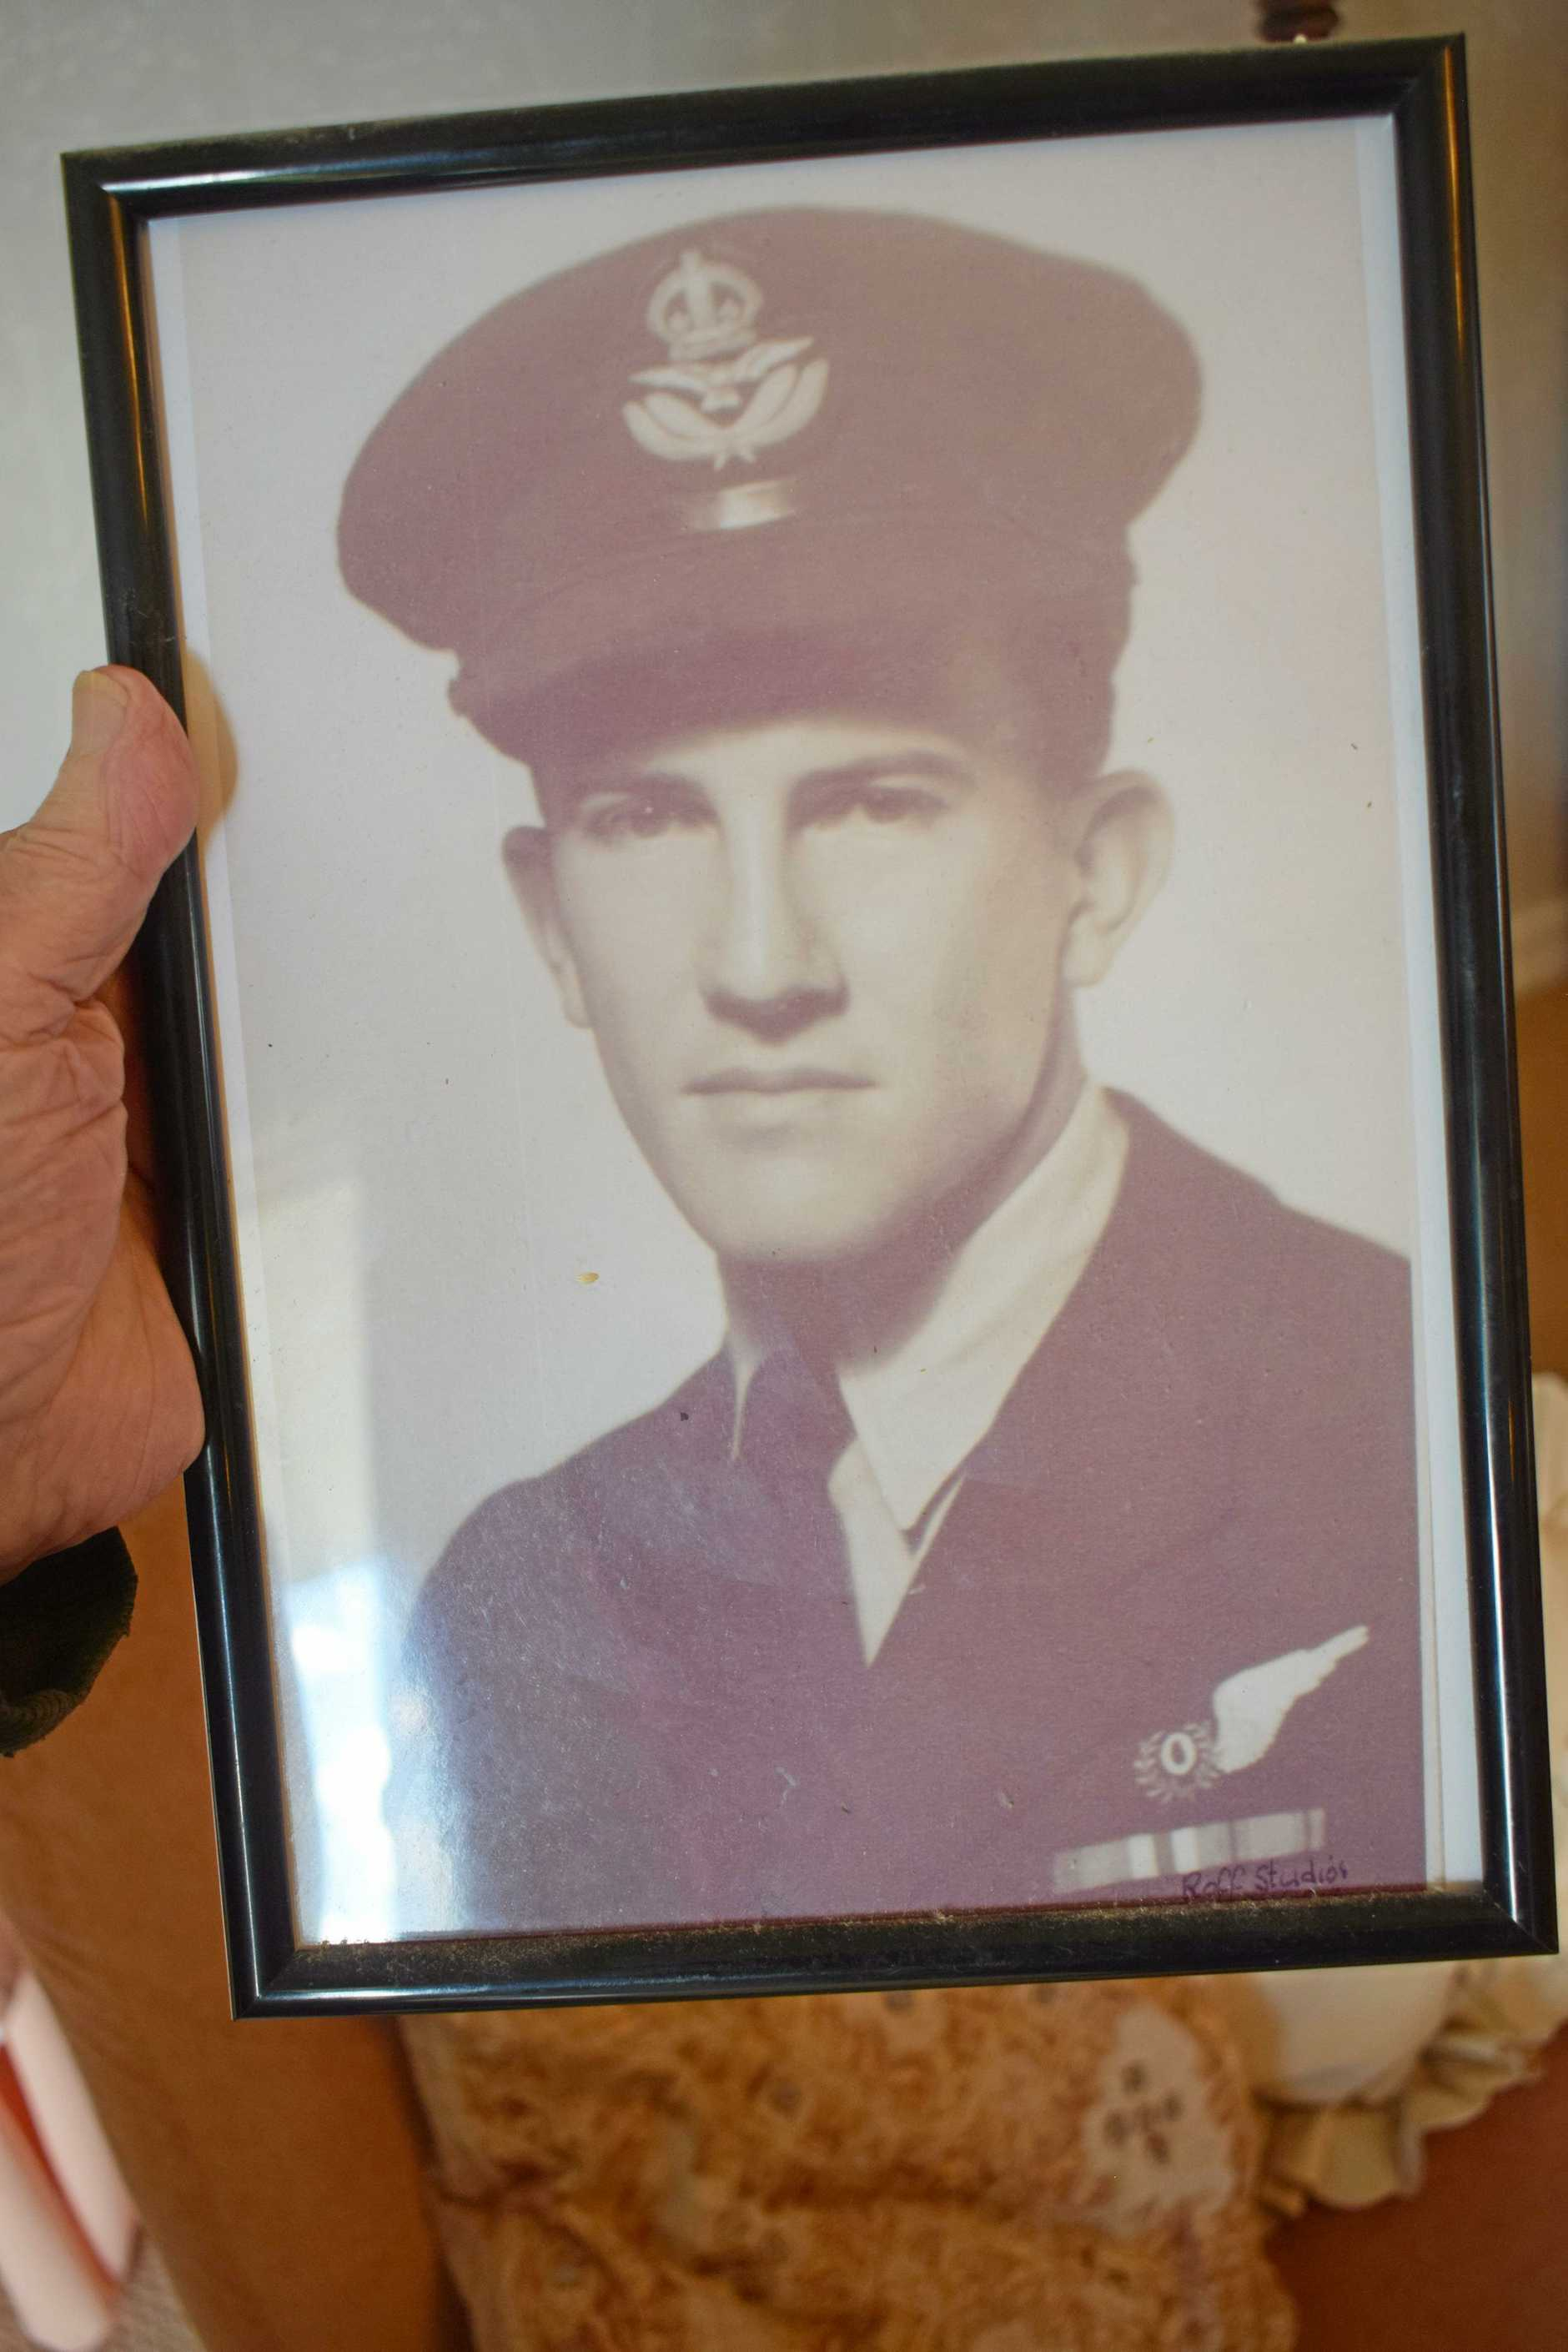 WW11 Veteran Vernon Lilley recalls his time in the Royal Australian Airforce.